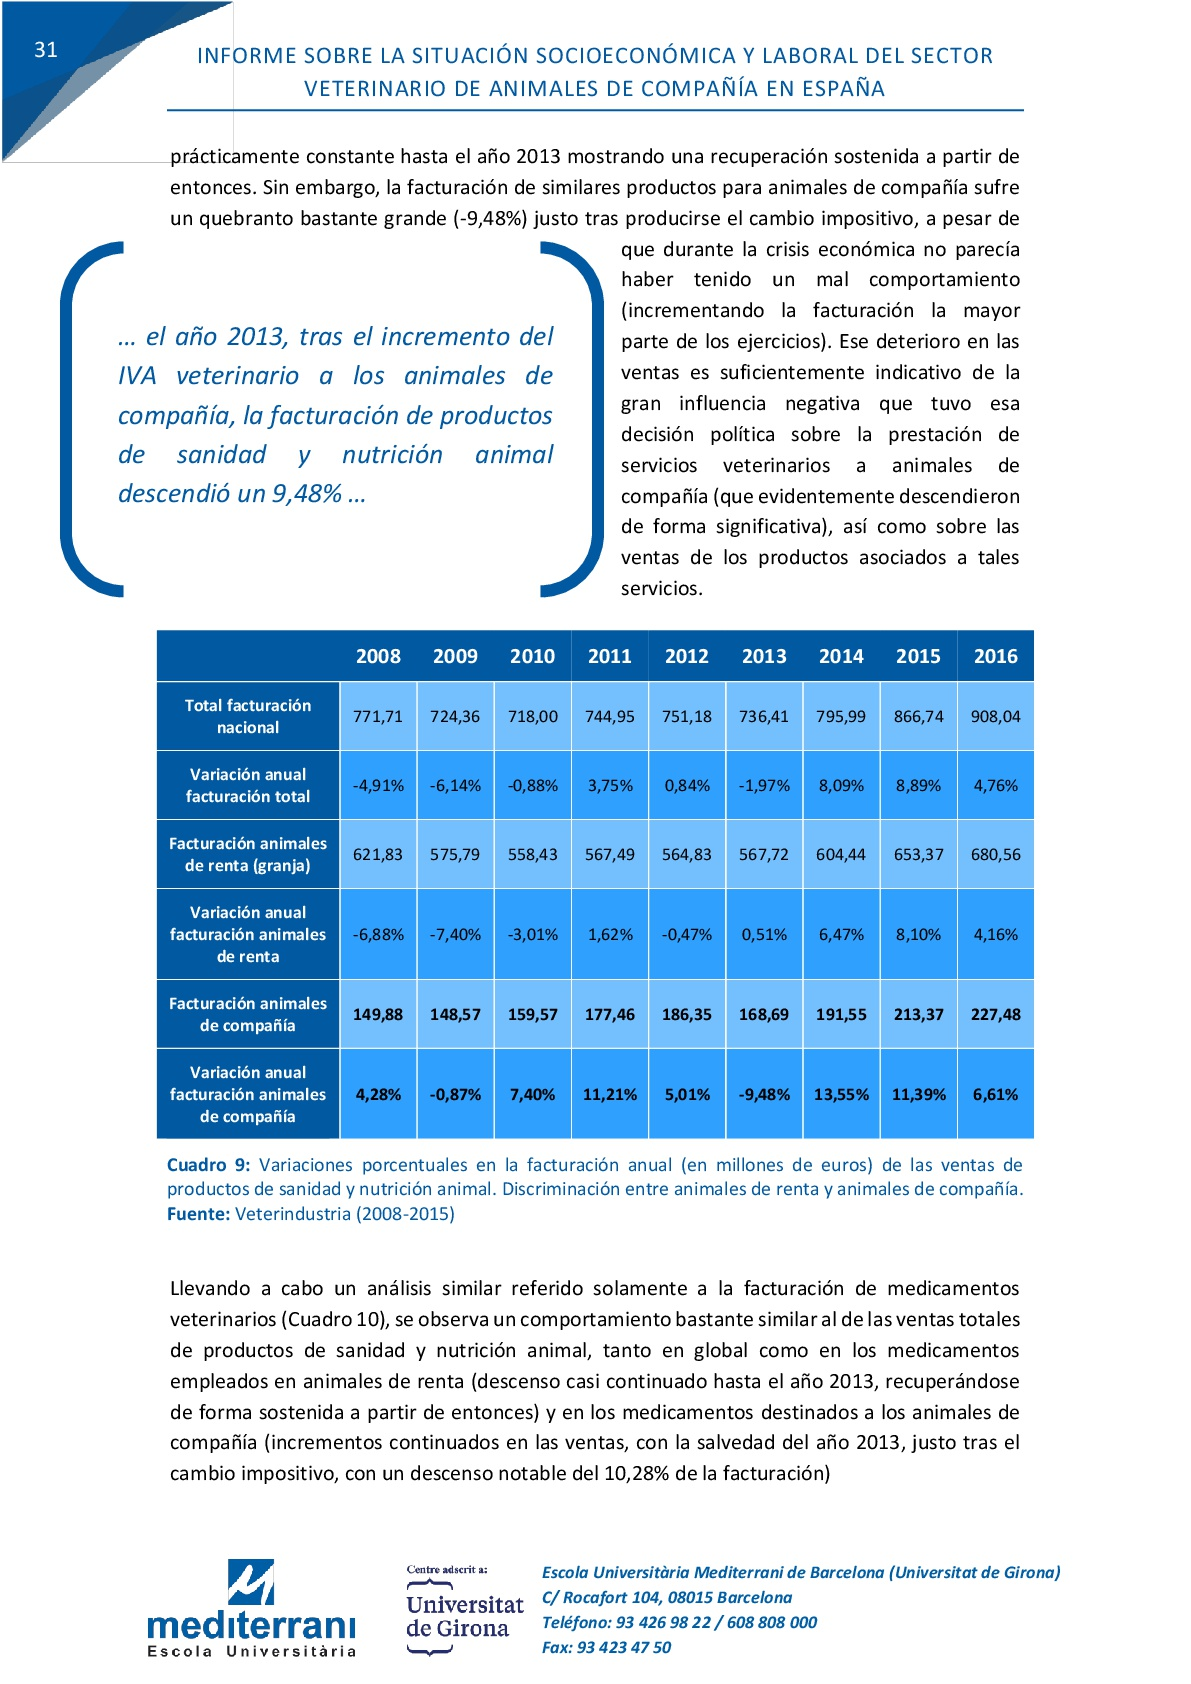 Informe-Veterinario-2017-+-informe-legal-2015-(3)-036